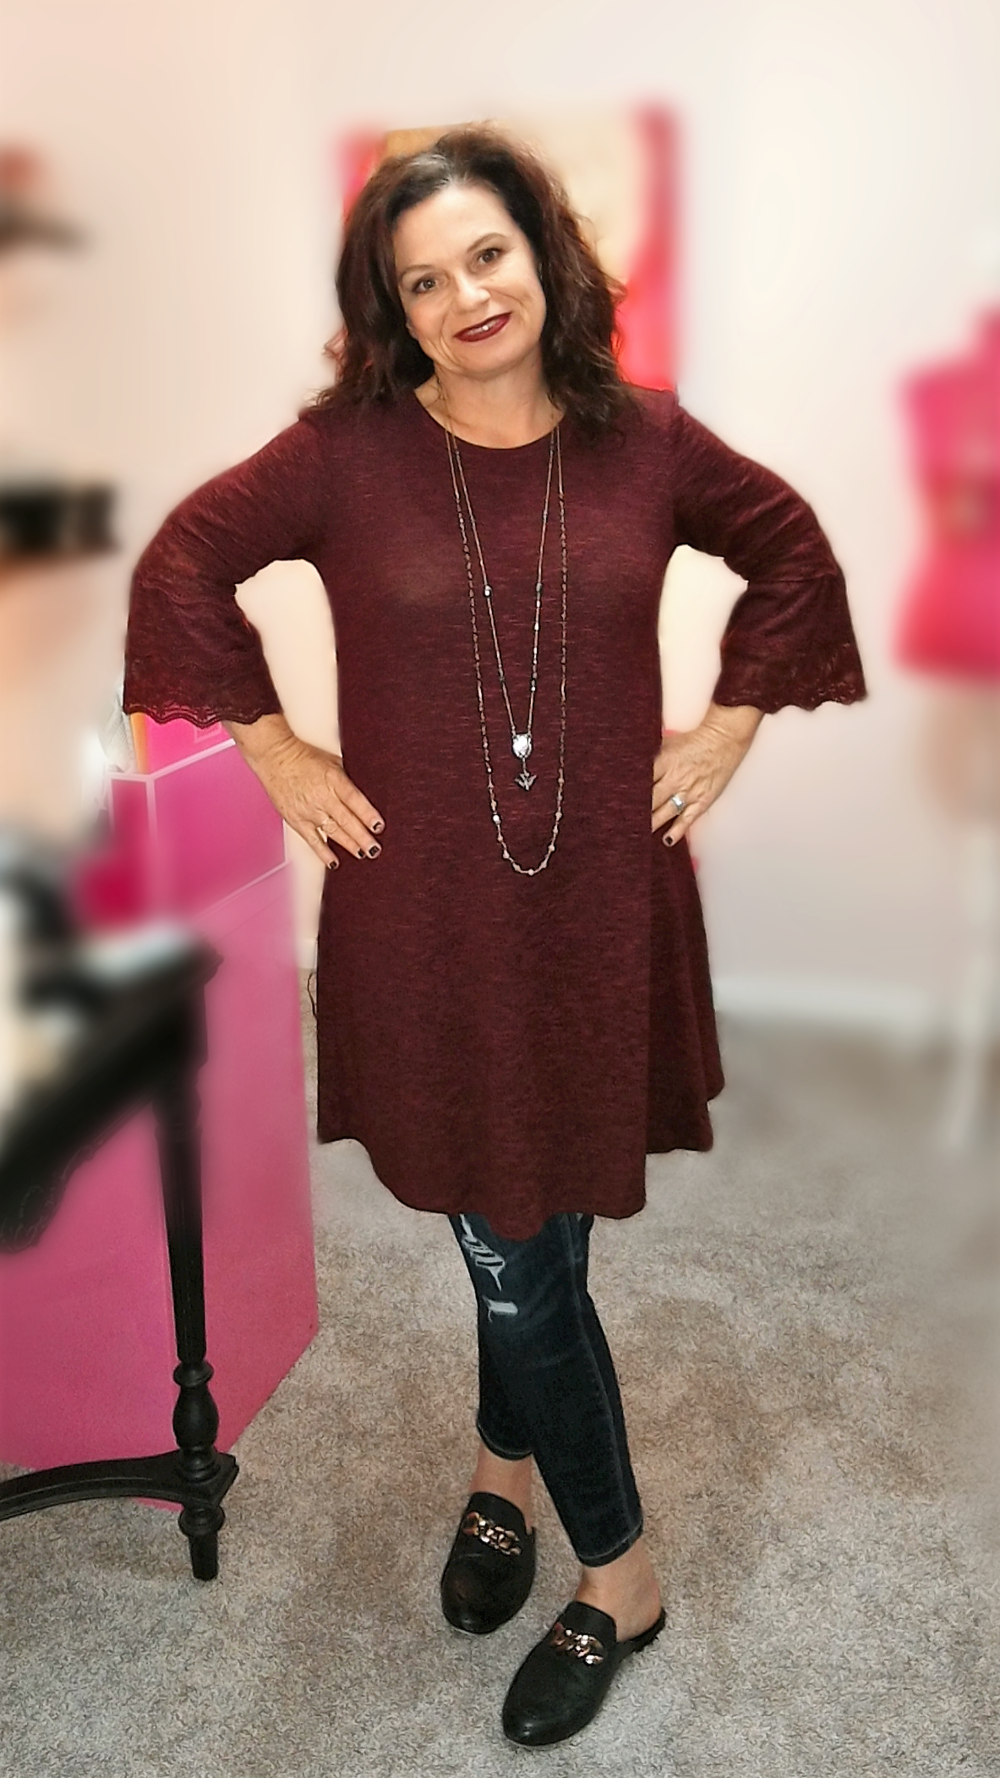 Dress with Jeans - If you follow me, you know wearing a dress with jeans, especially skinny jeans, is one of my favorite looks. I've paired the dress here with a darker jean and my mules for a casual, yet dressier feel. Perfect for date night or a night out with friends.